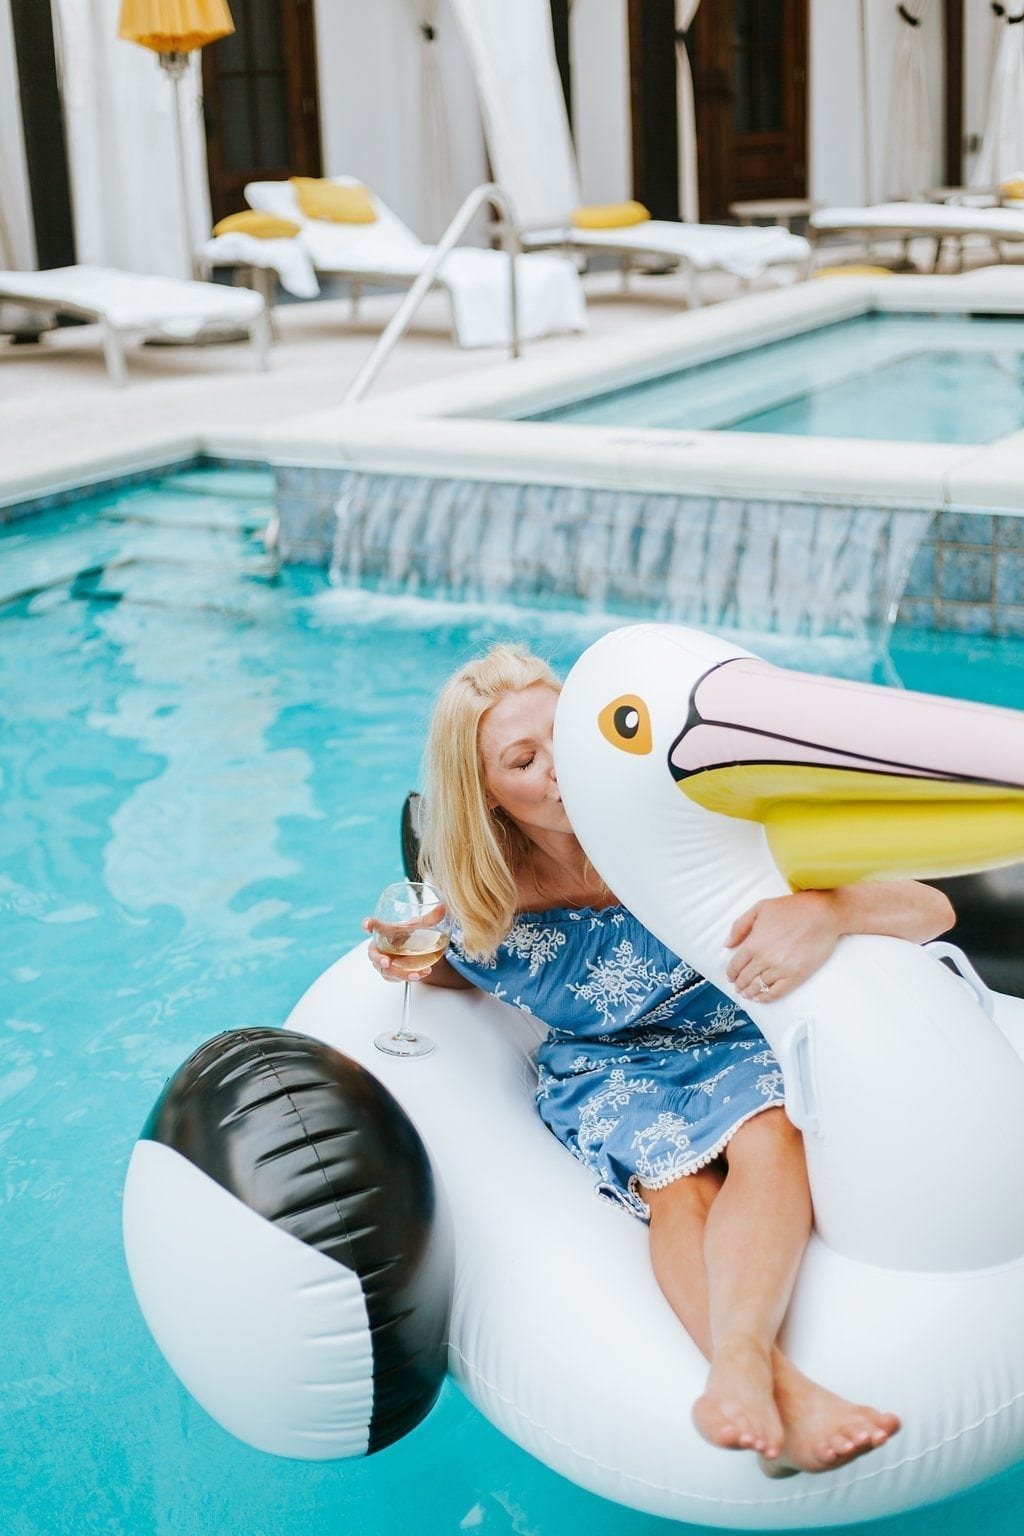 Cool inflatables for your pool. Animal floats for pool fun all summer long!